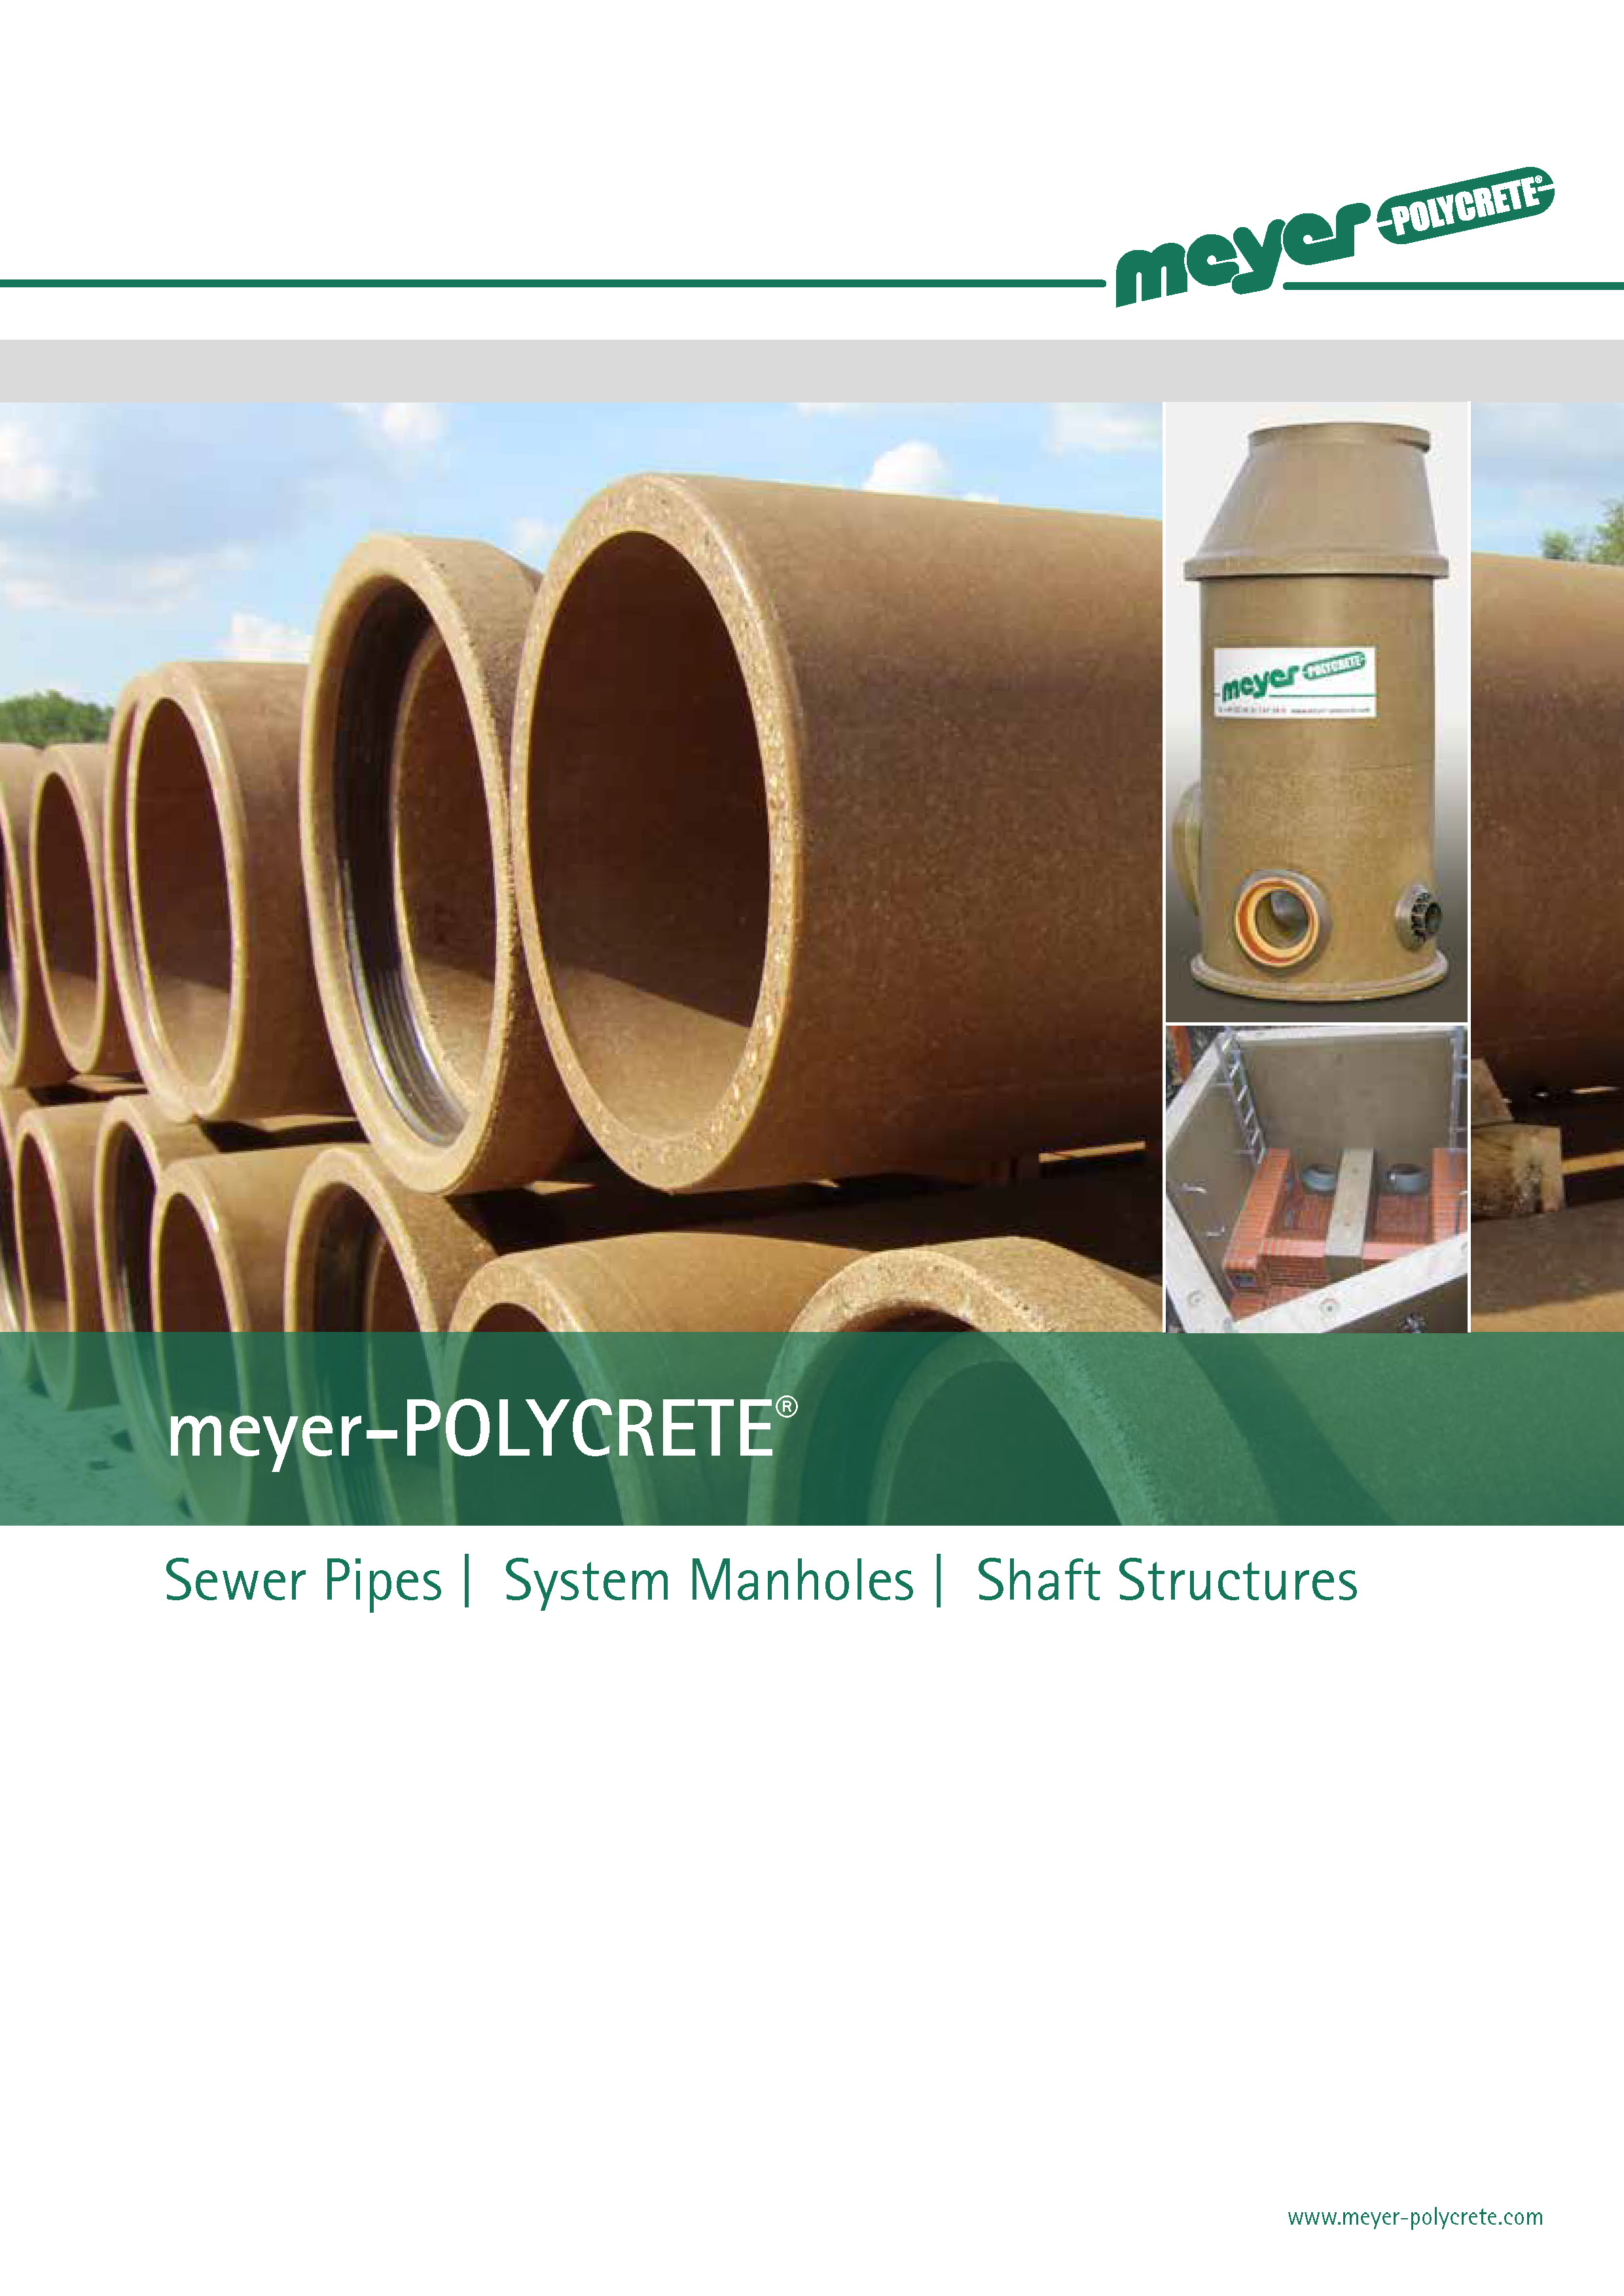 meyer POLYCRETE - Sewer pipes | System manholes | Shaft structures